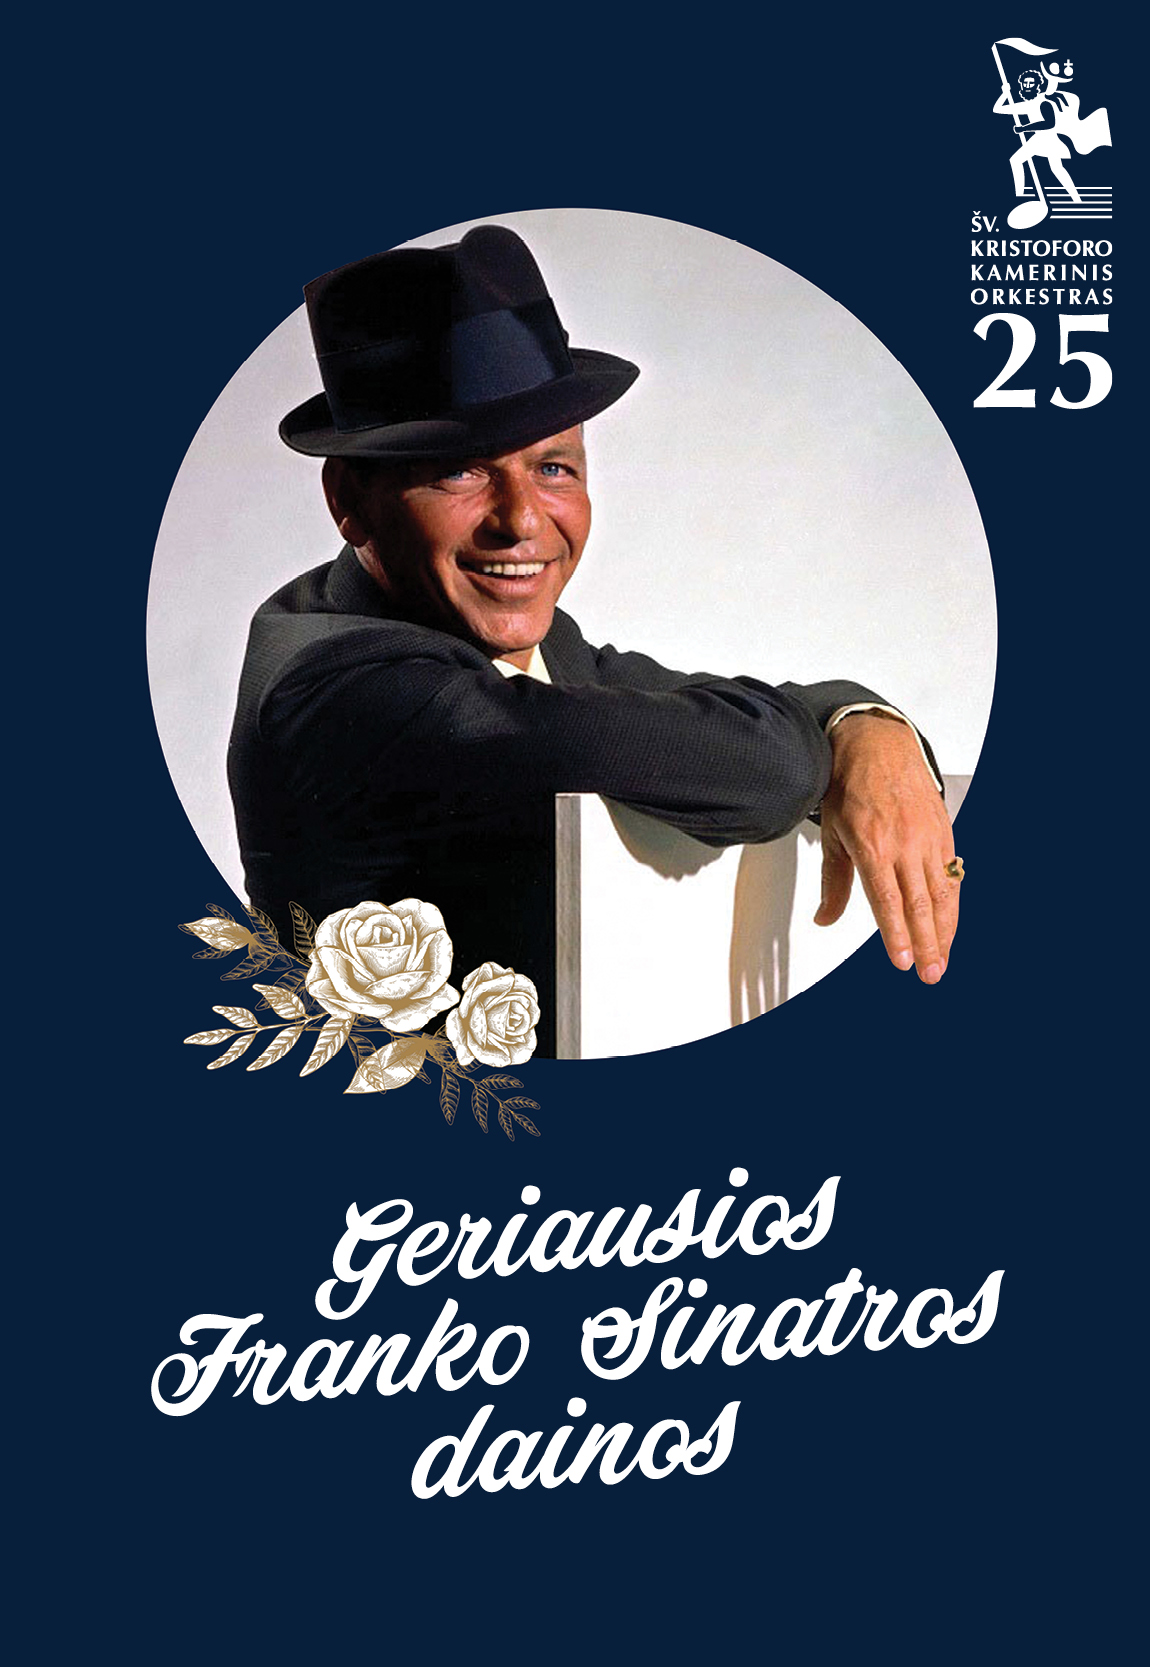 Frank Sinatra in a New Way